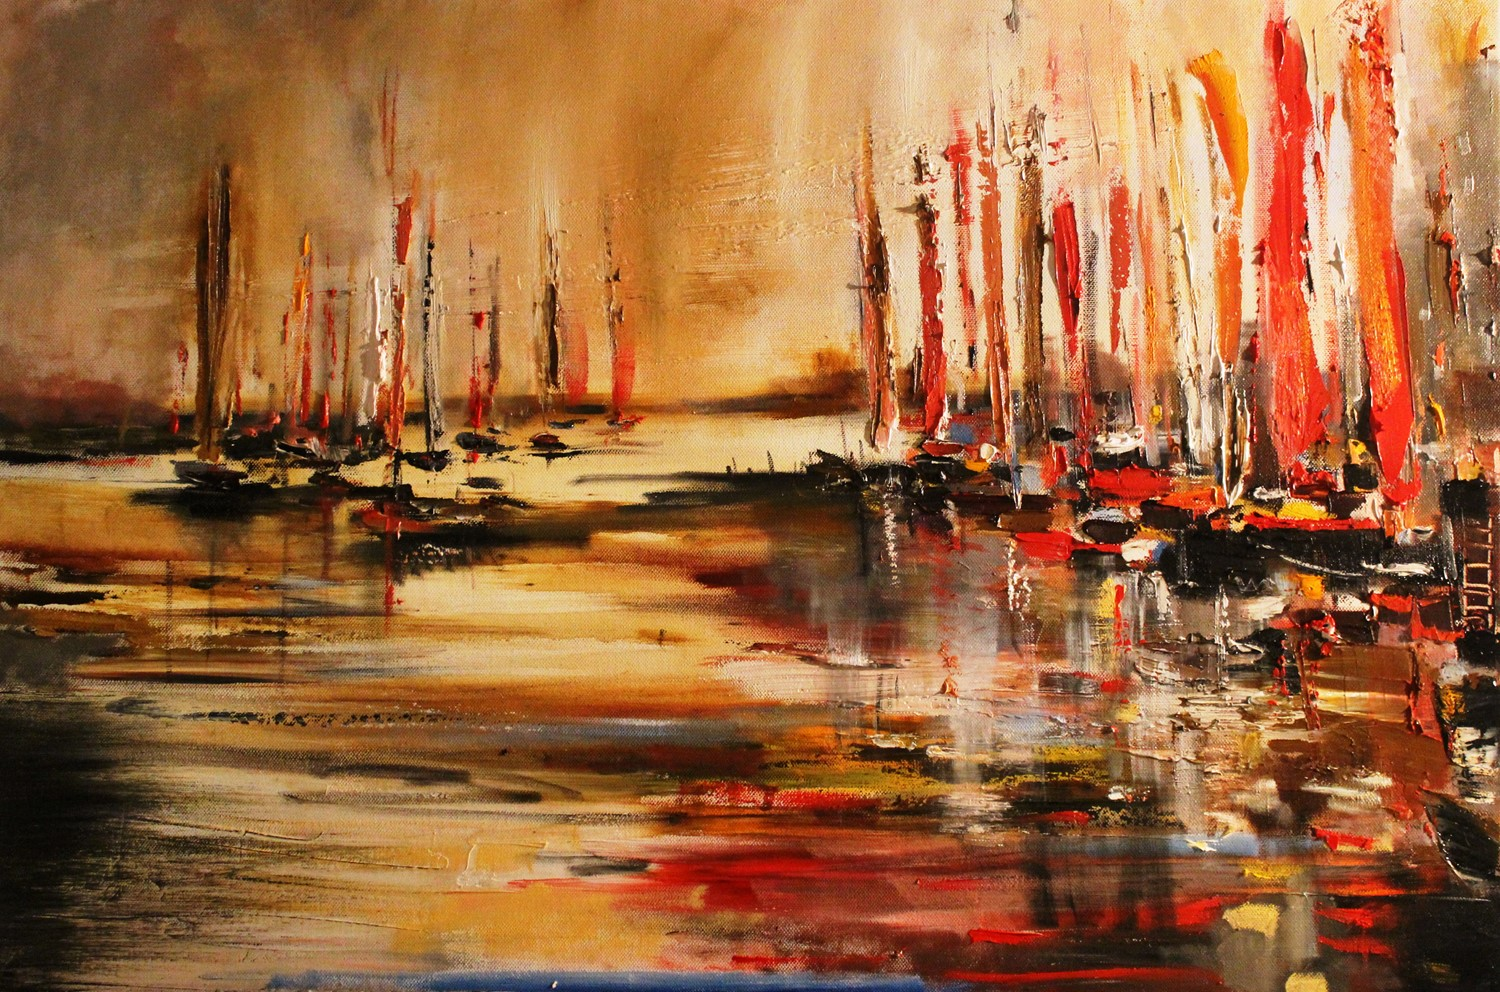 'A Cluttered Harbour' by artist Rosanne Barr